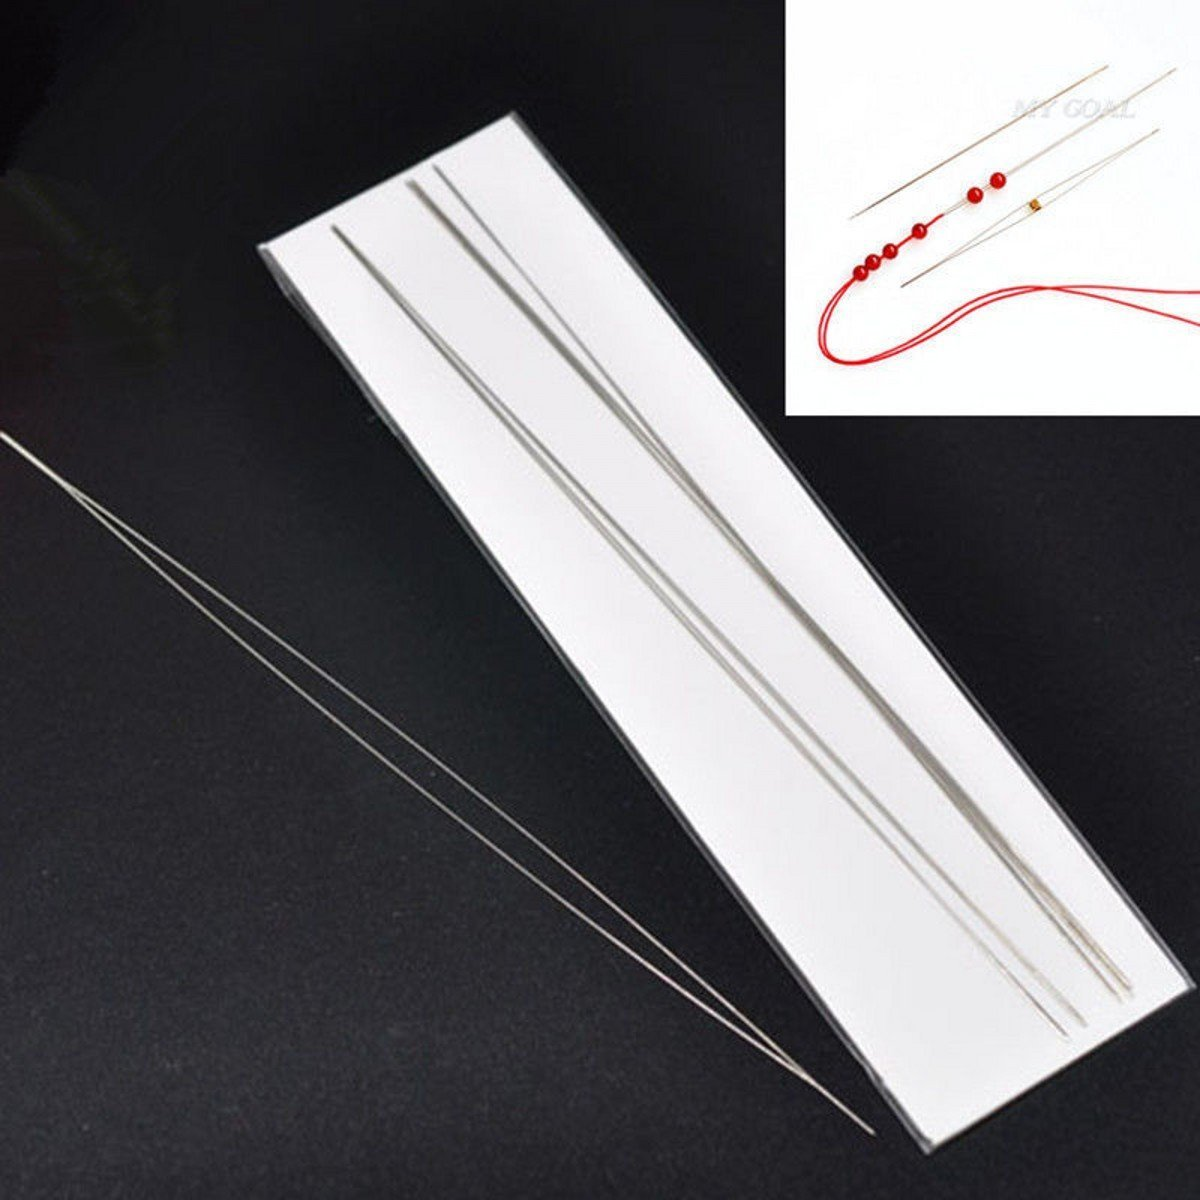 12.5cm,11.5cm,10cm,7.5cm,6cm,4cm WellieSTR Lot Of 6pcs Different Size Large Eye Beading Needles Kits